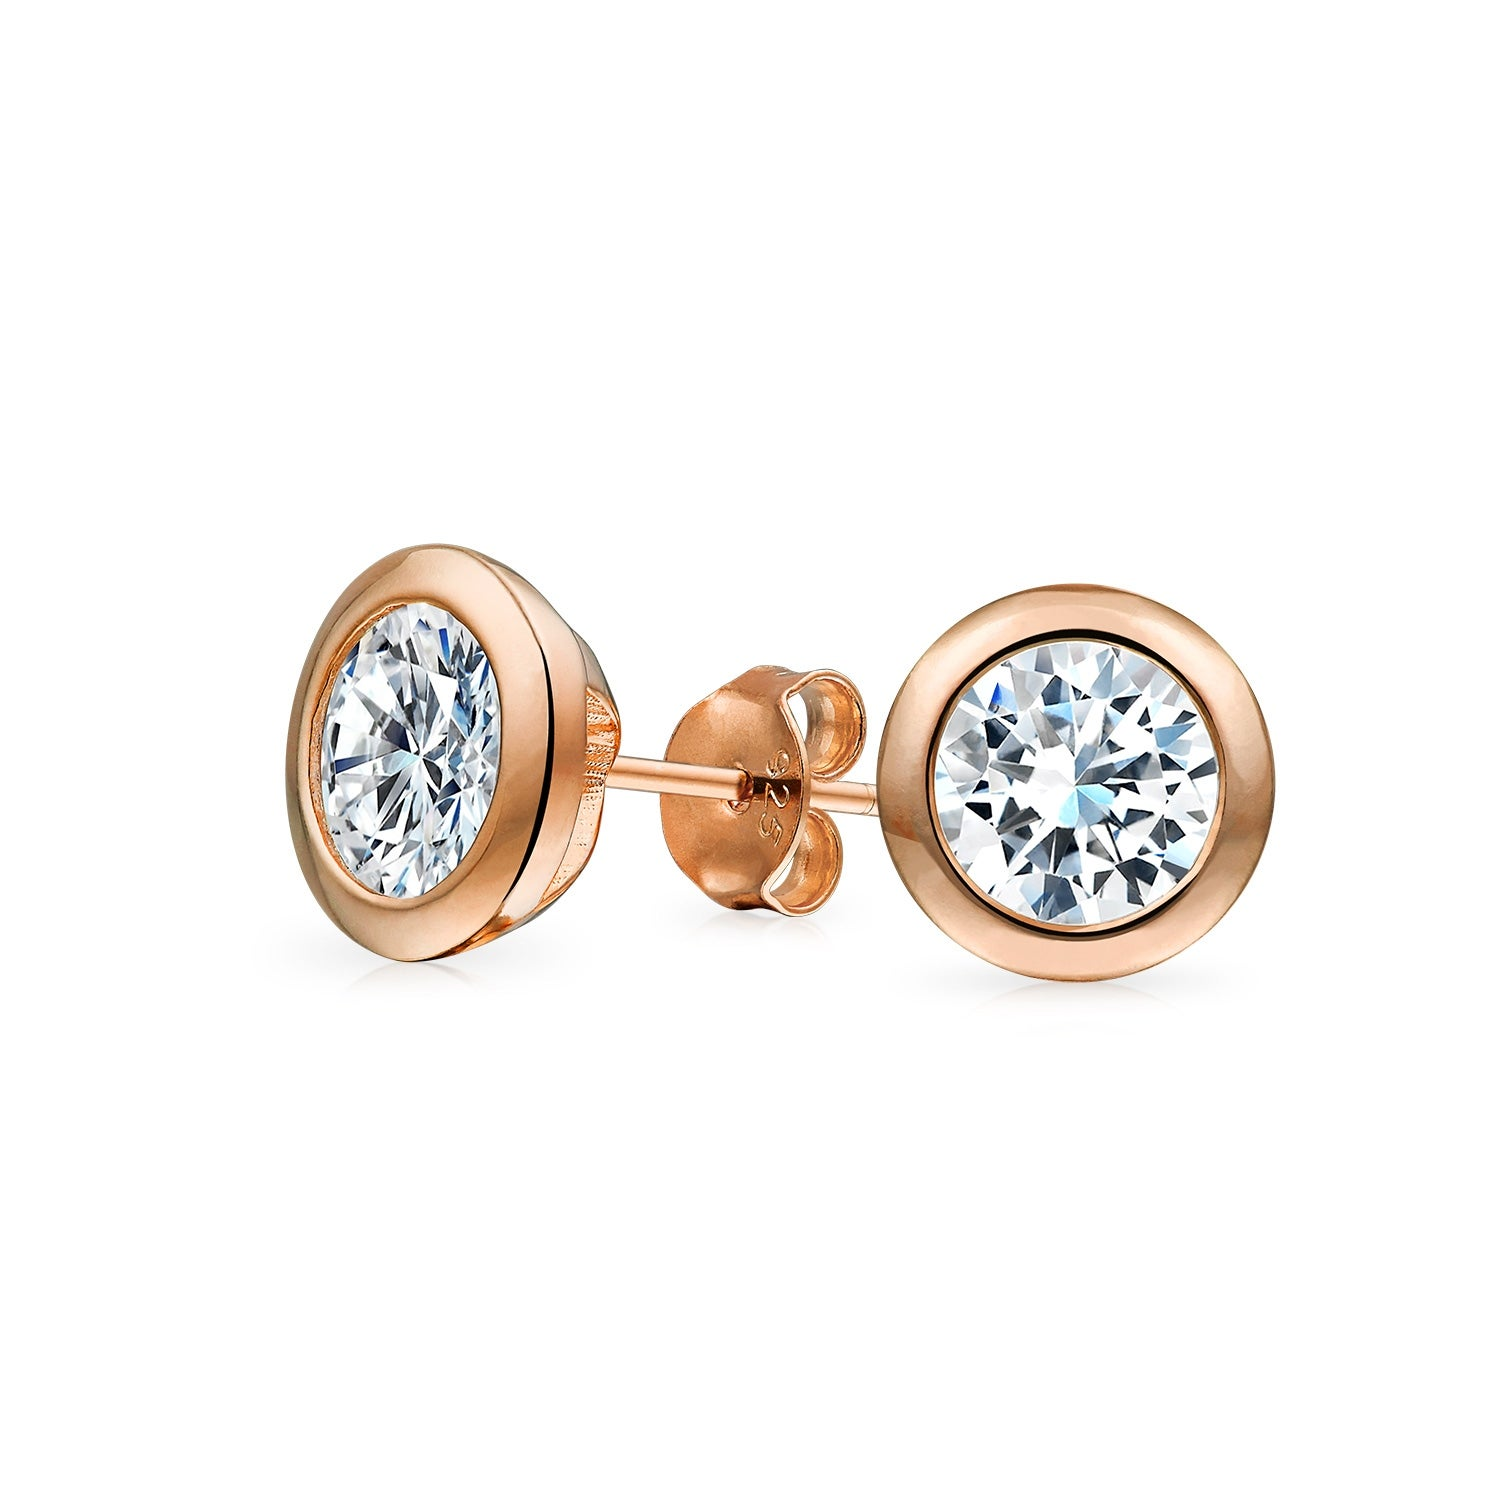 cfa967eb59dd Shop Classic Martini Set Cubic Zirconia Colorless Round CZ Stud Earrings  For Women 14K Rose Gold Plated Sterling Silver 7MM - On Sale - Free  Shipping On ...